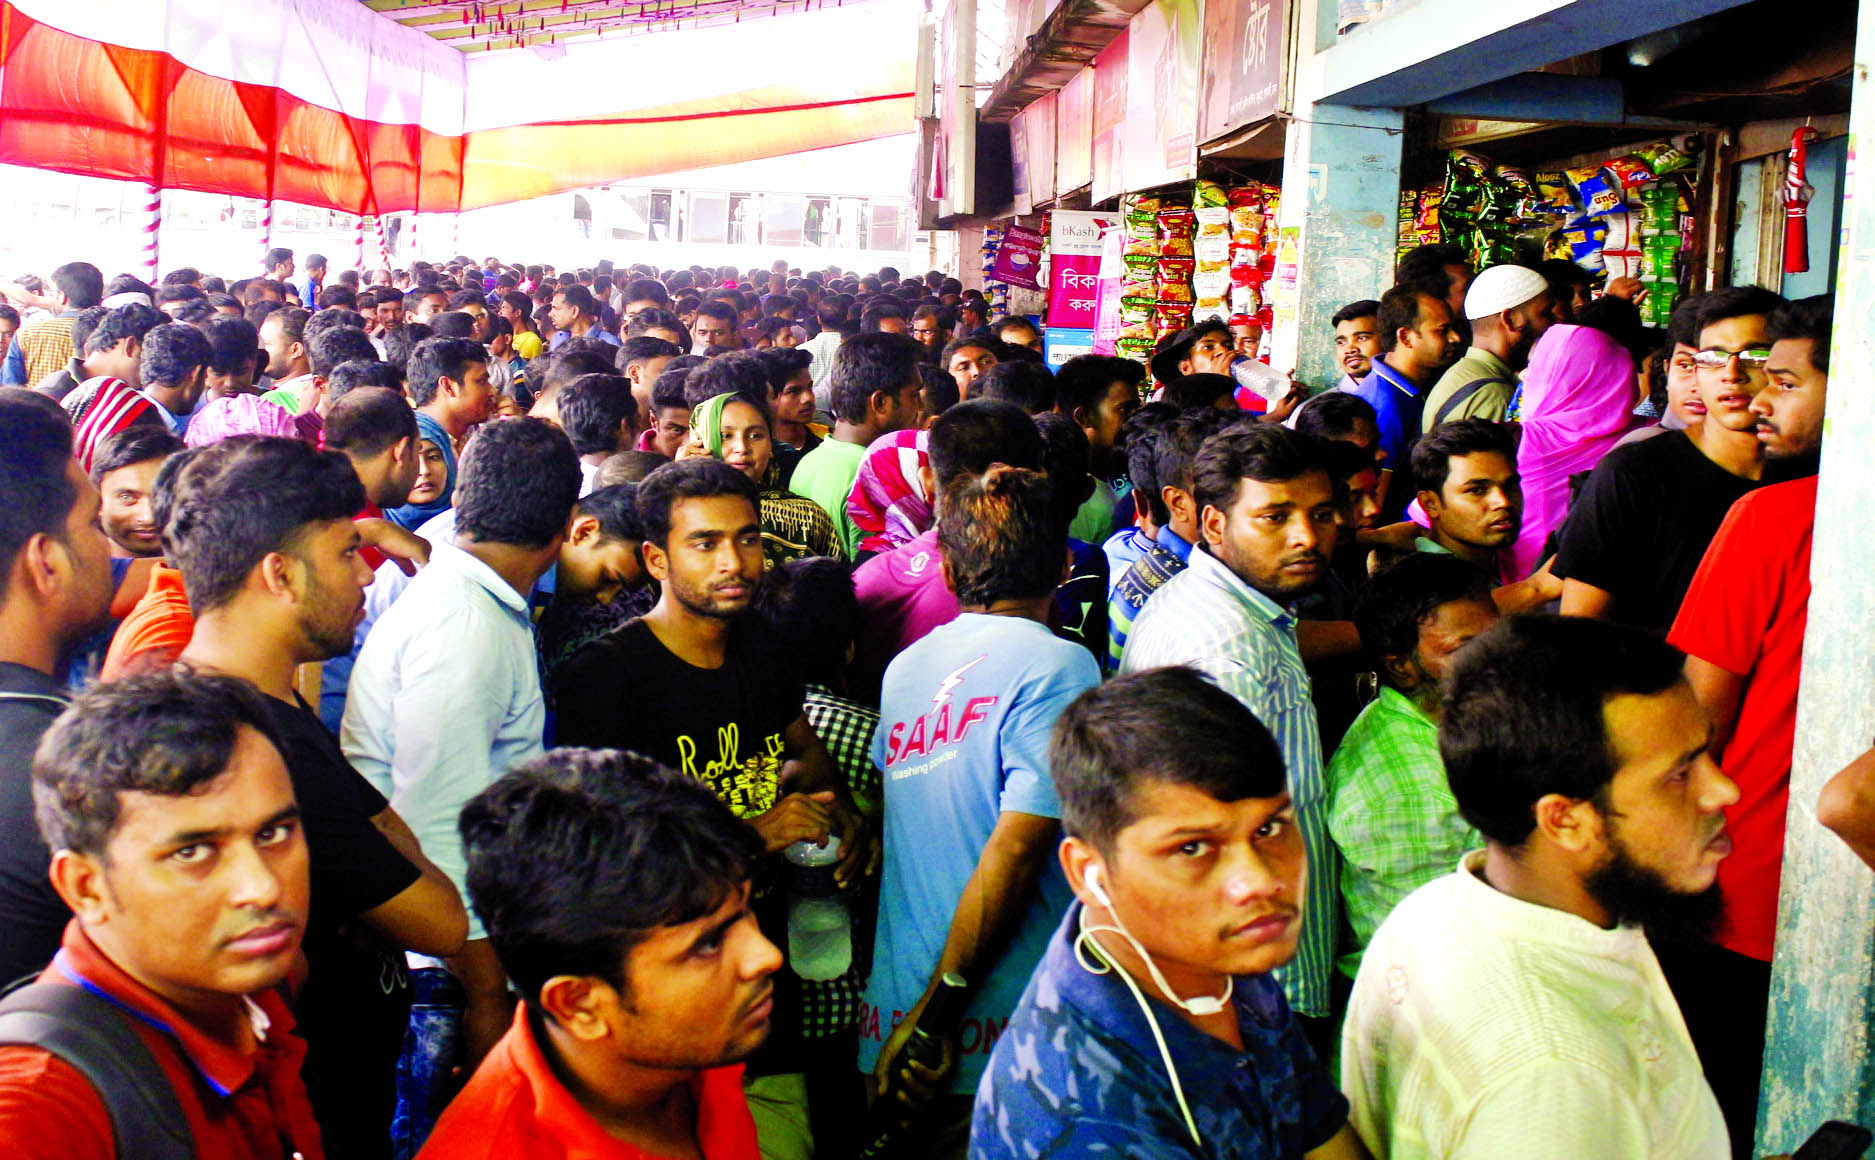 Thousands of people thronged the Gabtali bus terminal counter to buy Eid-ul-Azha advance tickets started to sale yesterday.